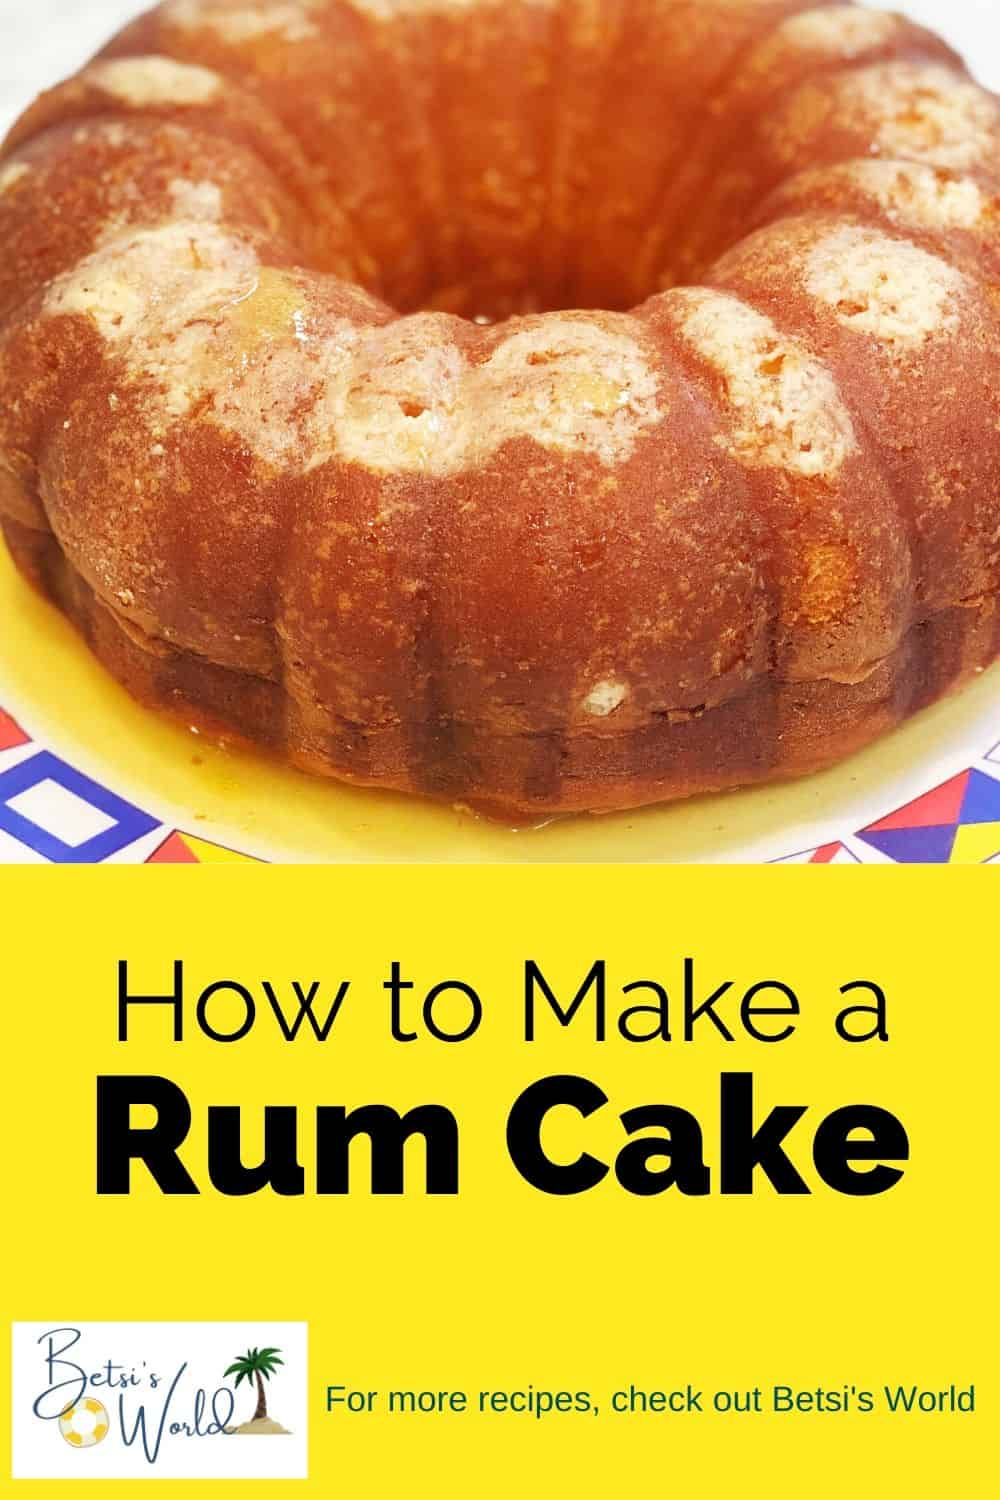 Take a food trip to islands of the Caribbean with this delectable Rum Cake. This easy cake will have your guests clamoring for more! #summertimedesserts #easyrumcake #rumcake #cake #bundt #cakerecipe #recipe #dessert #baking #Rum